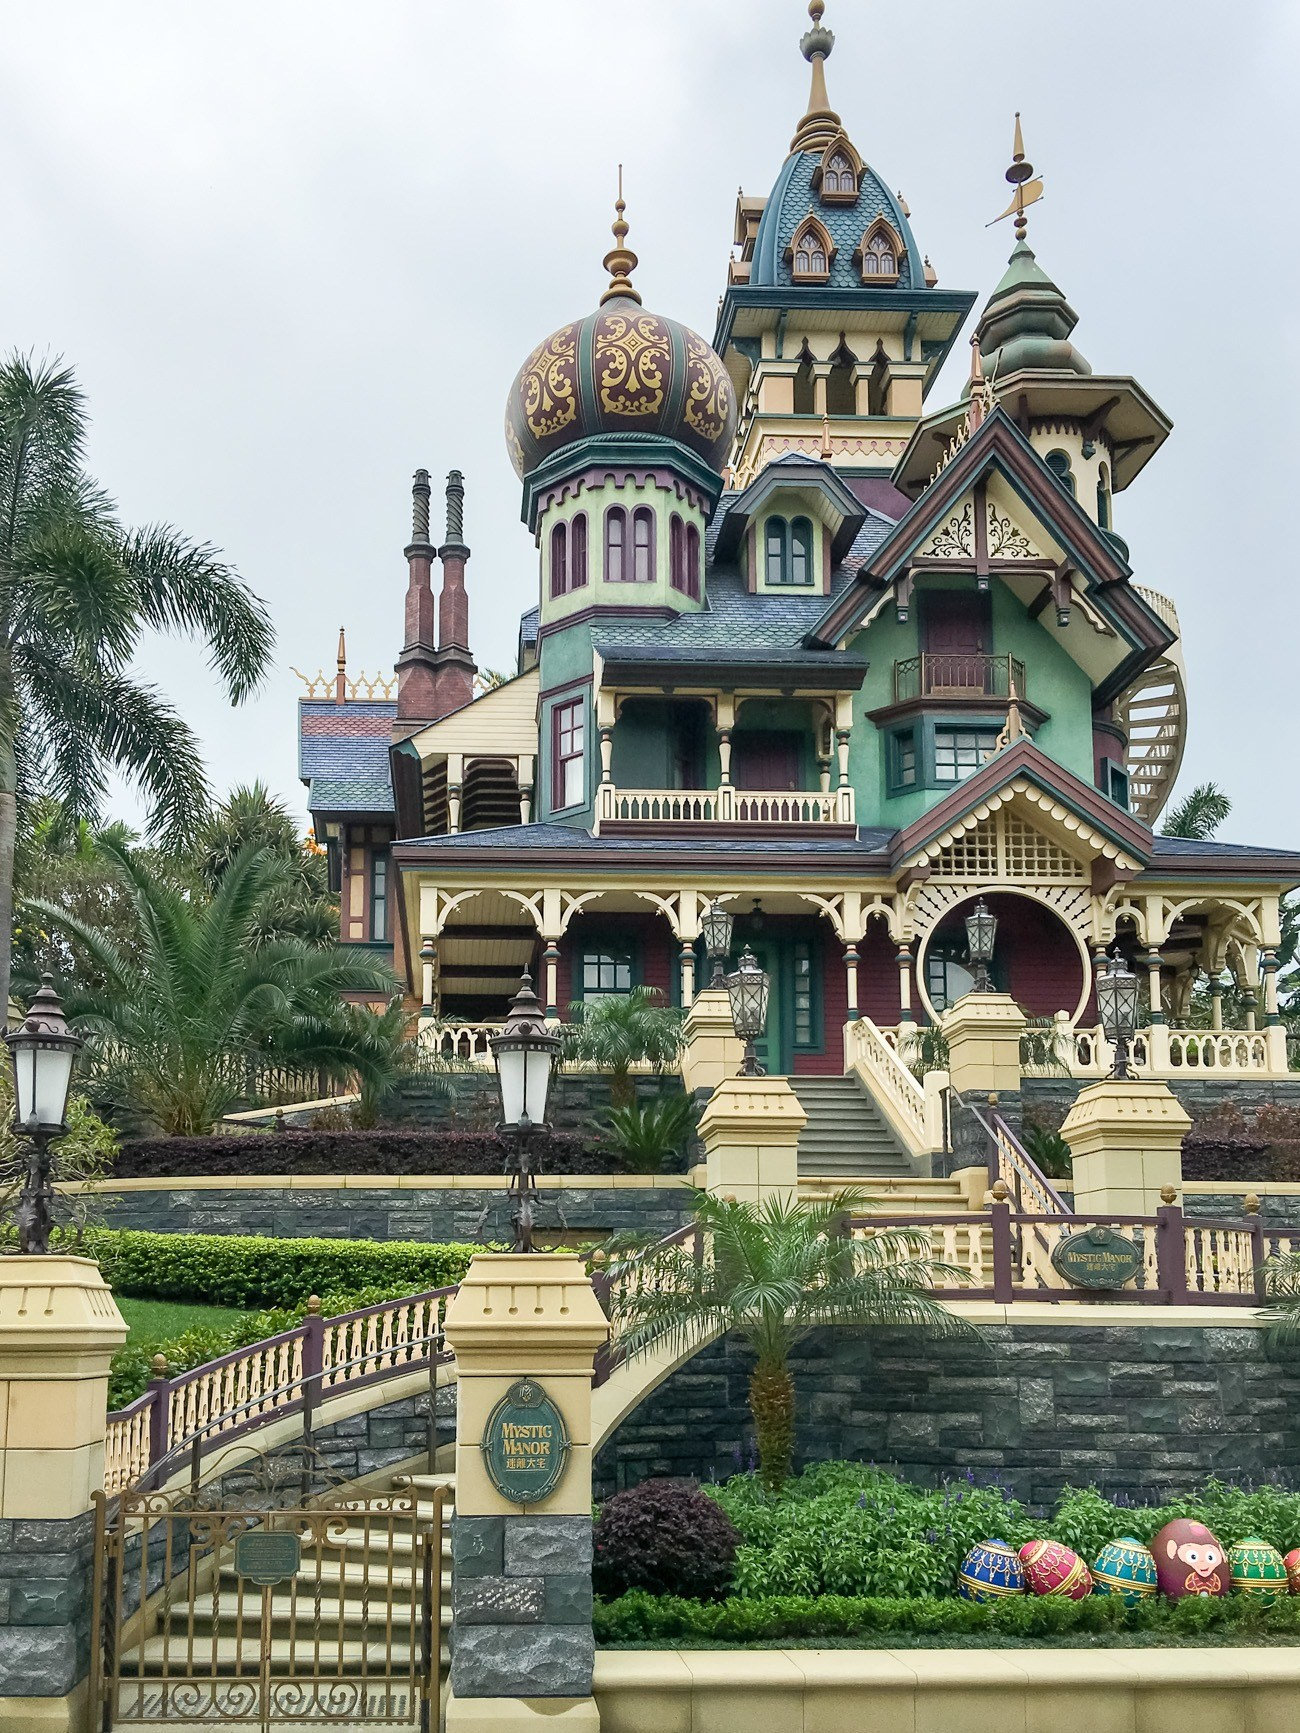 Mystic Manor is one of the best rides at Hong Kong Disneyland